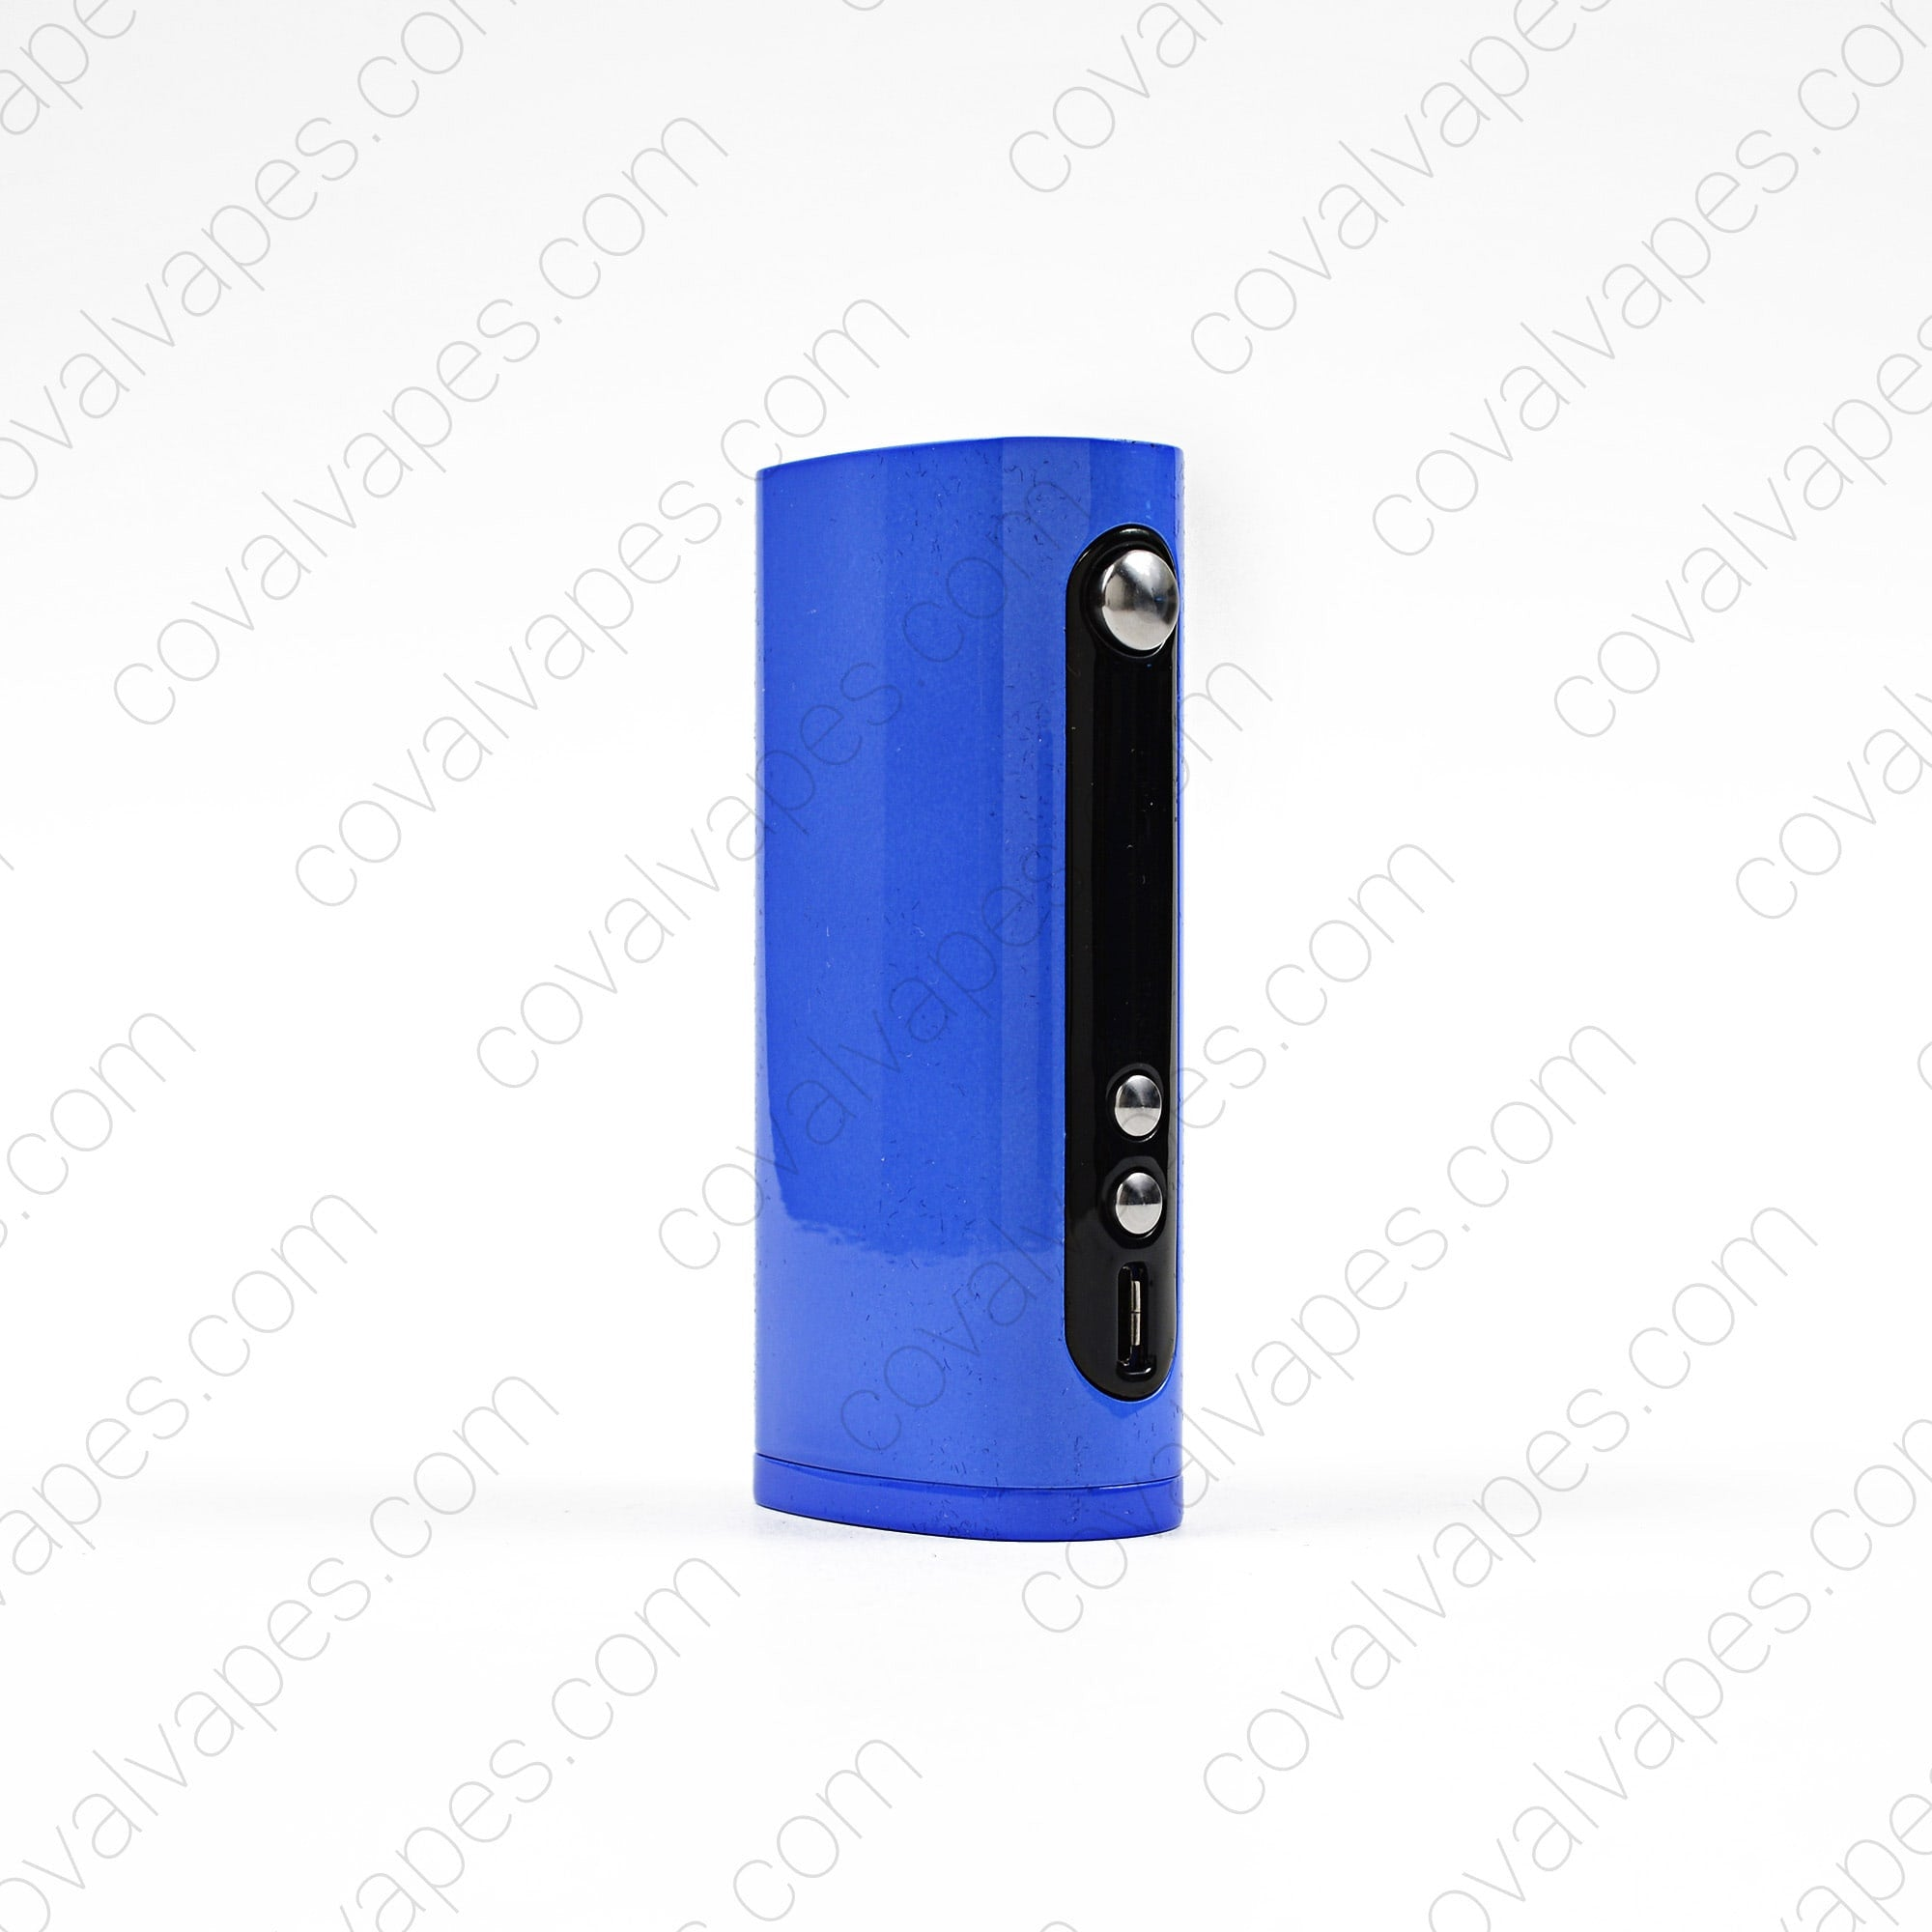 Vape Forward Vaporflask Lite Mod in Royal Blue (Open Box)